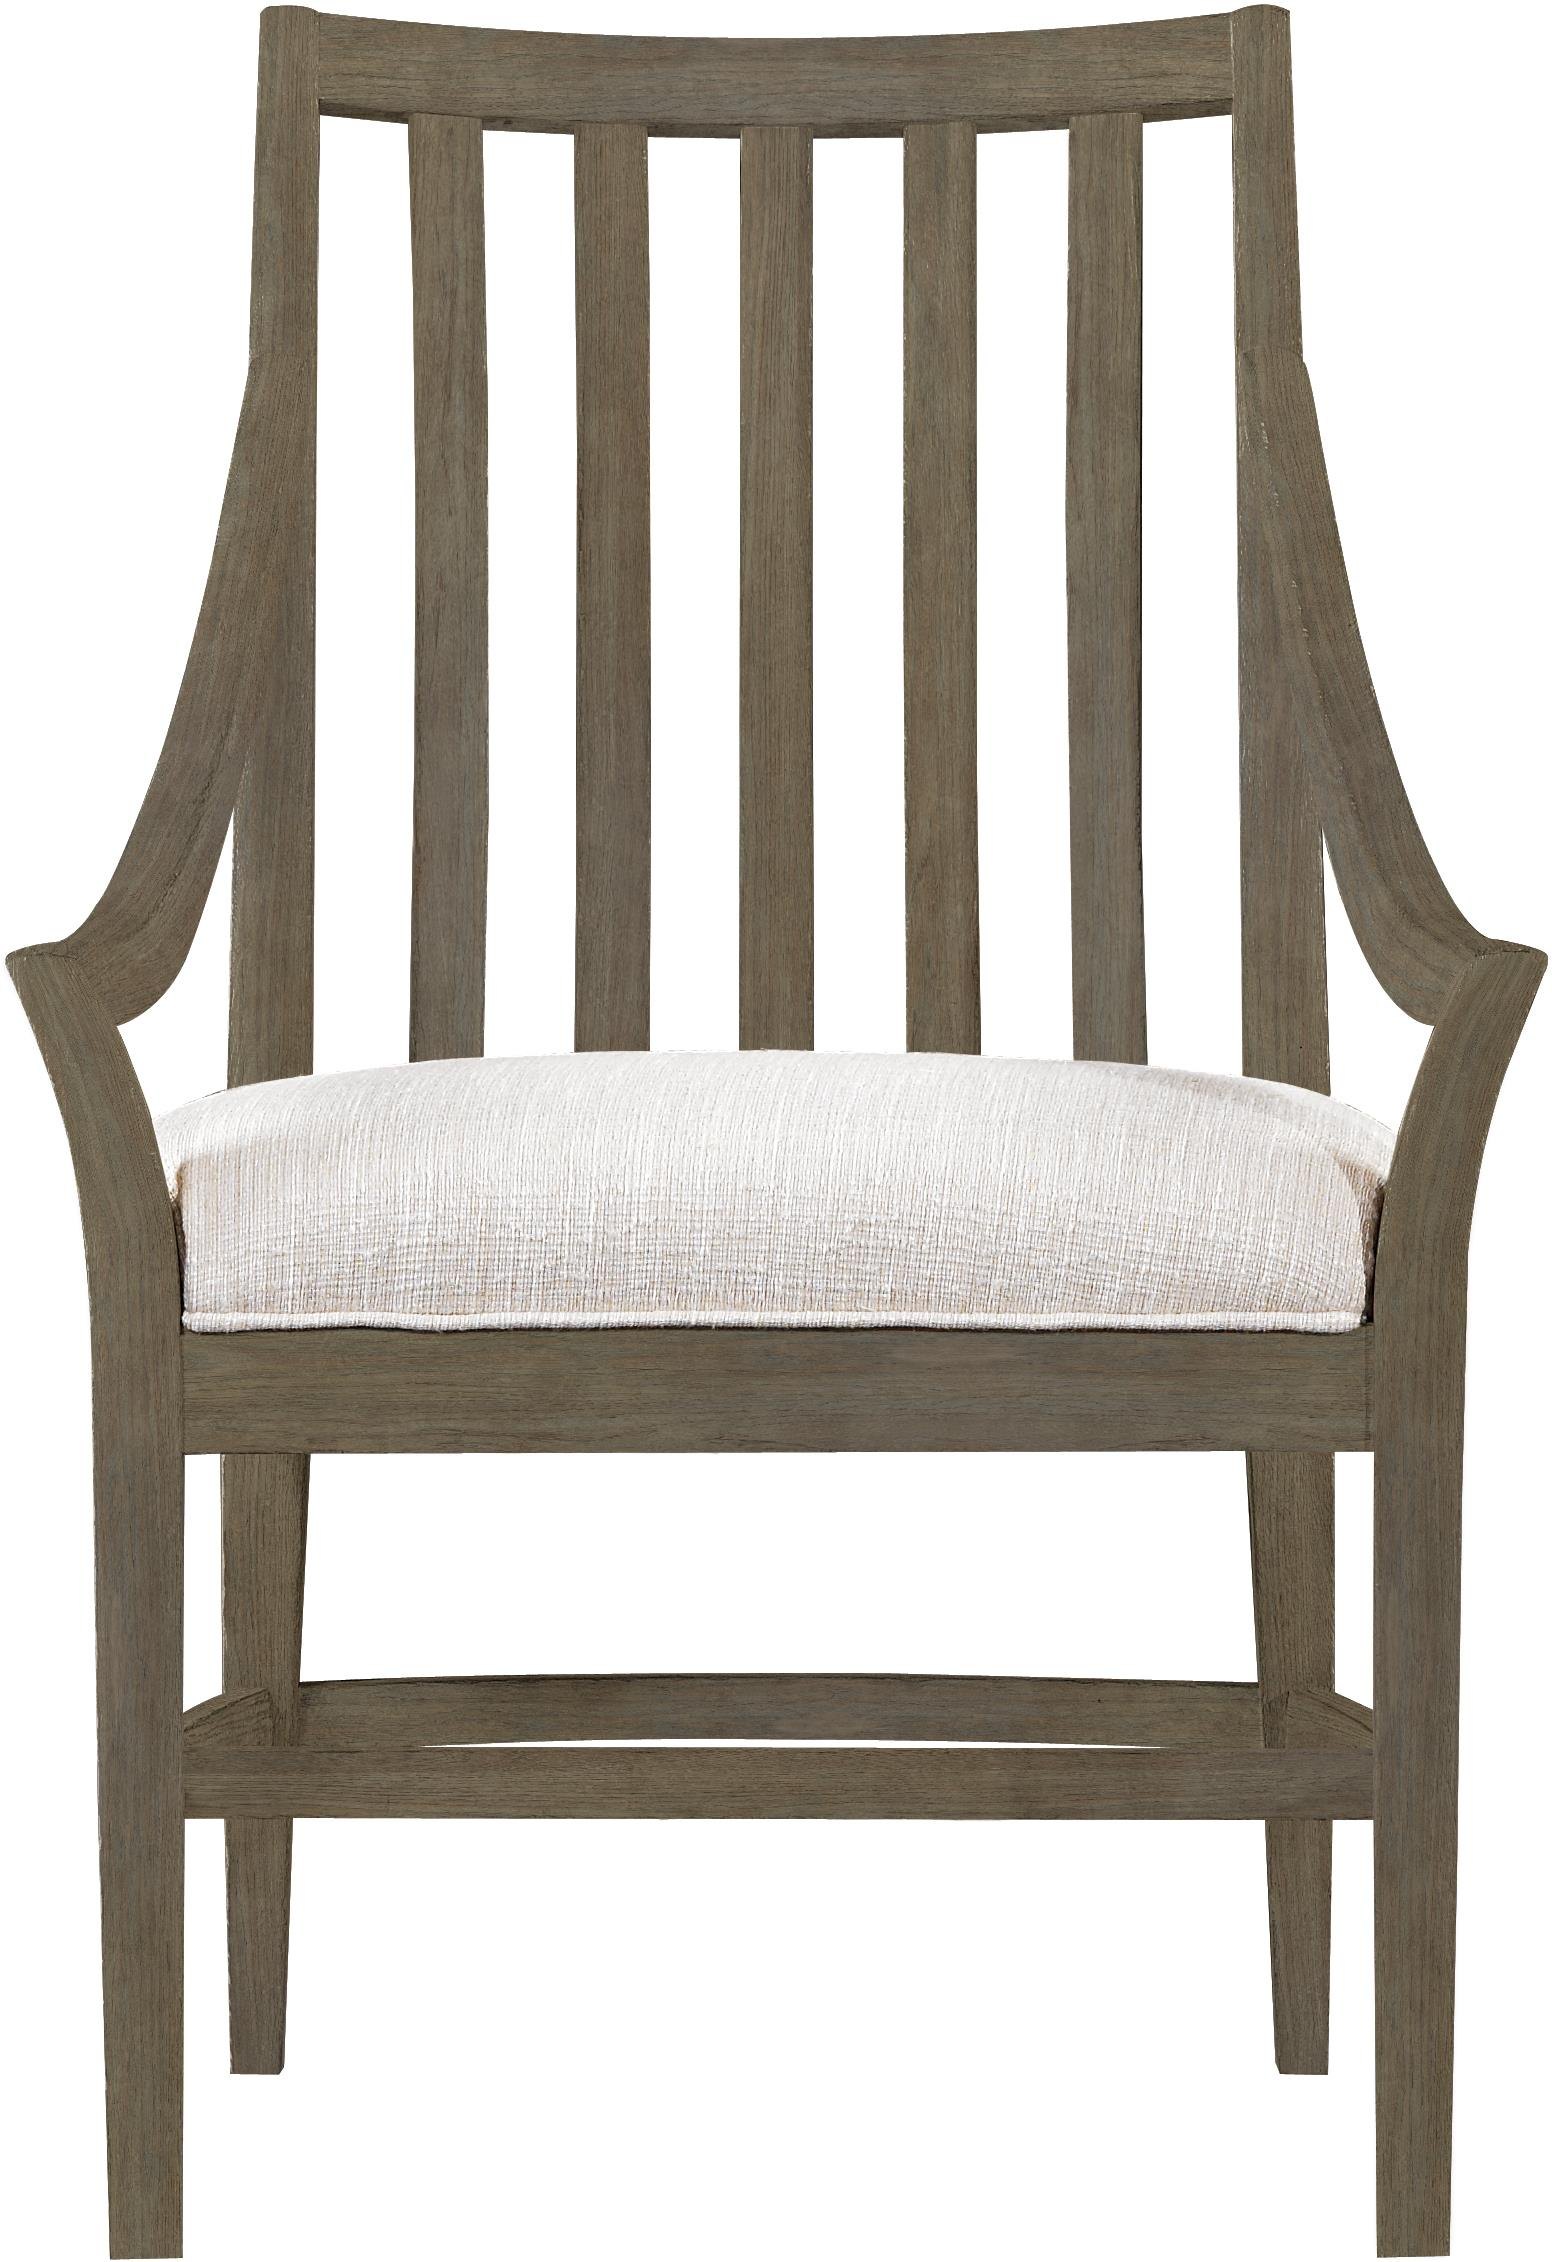 Stanley Furniture Coastal Living Resort By the Bay Dining Chair - Item Number: 062-31-65